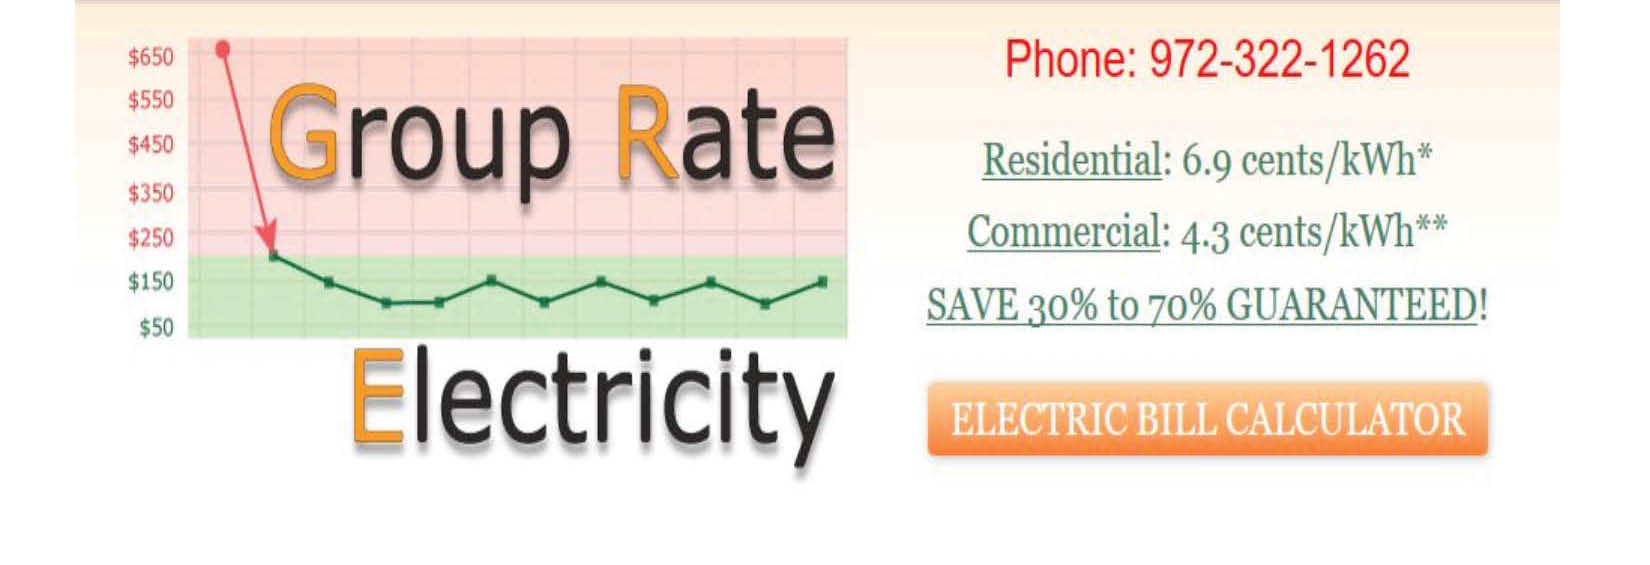 group-rate-electricity-dallas-tx-banner